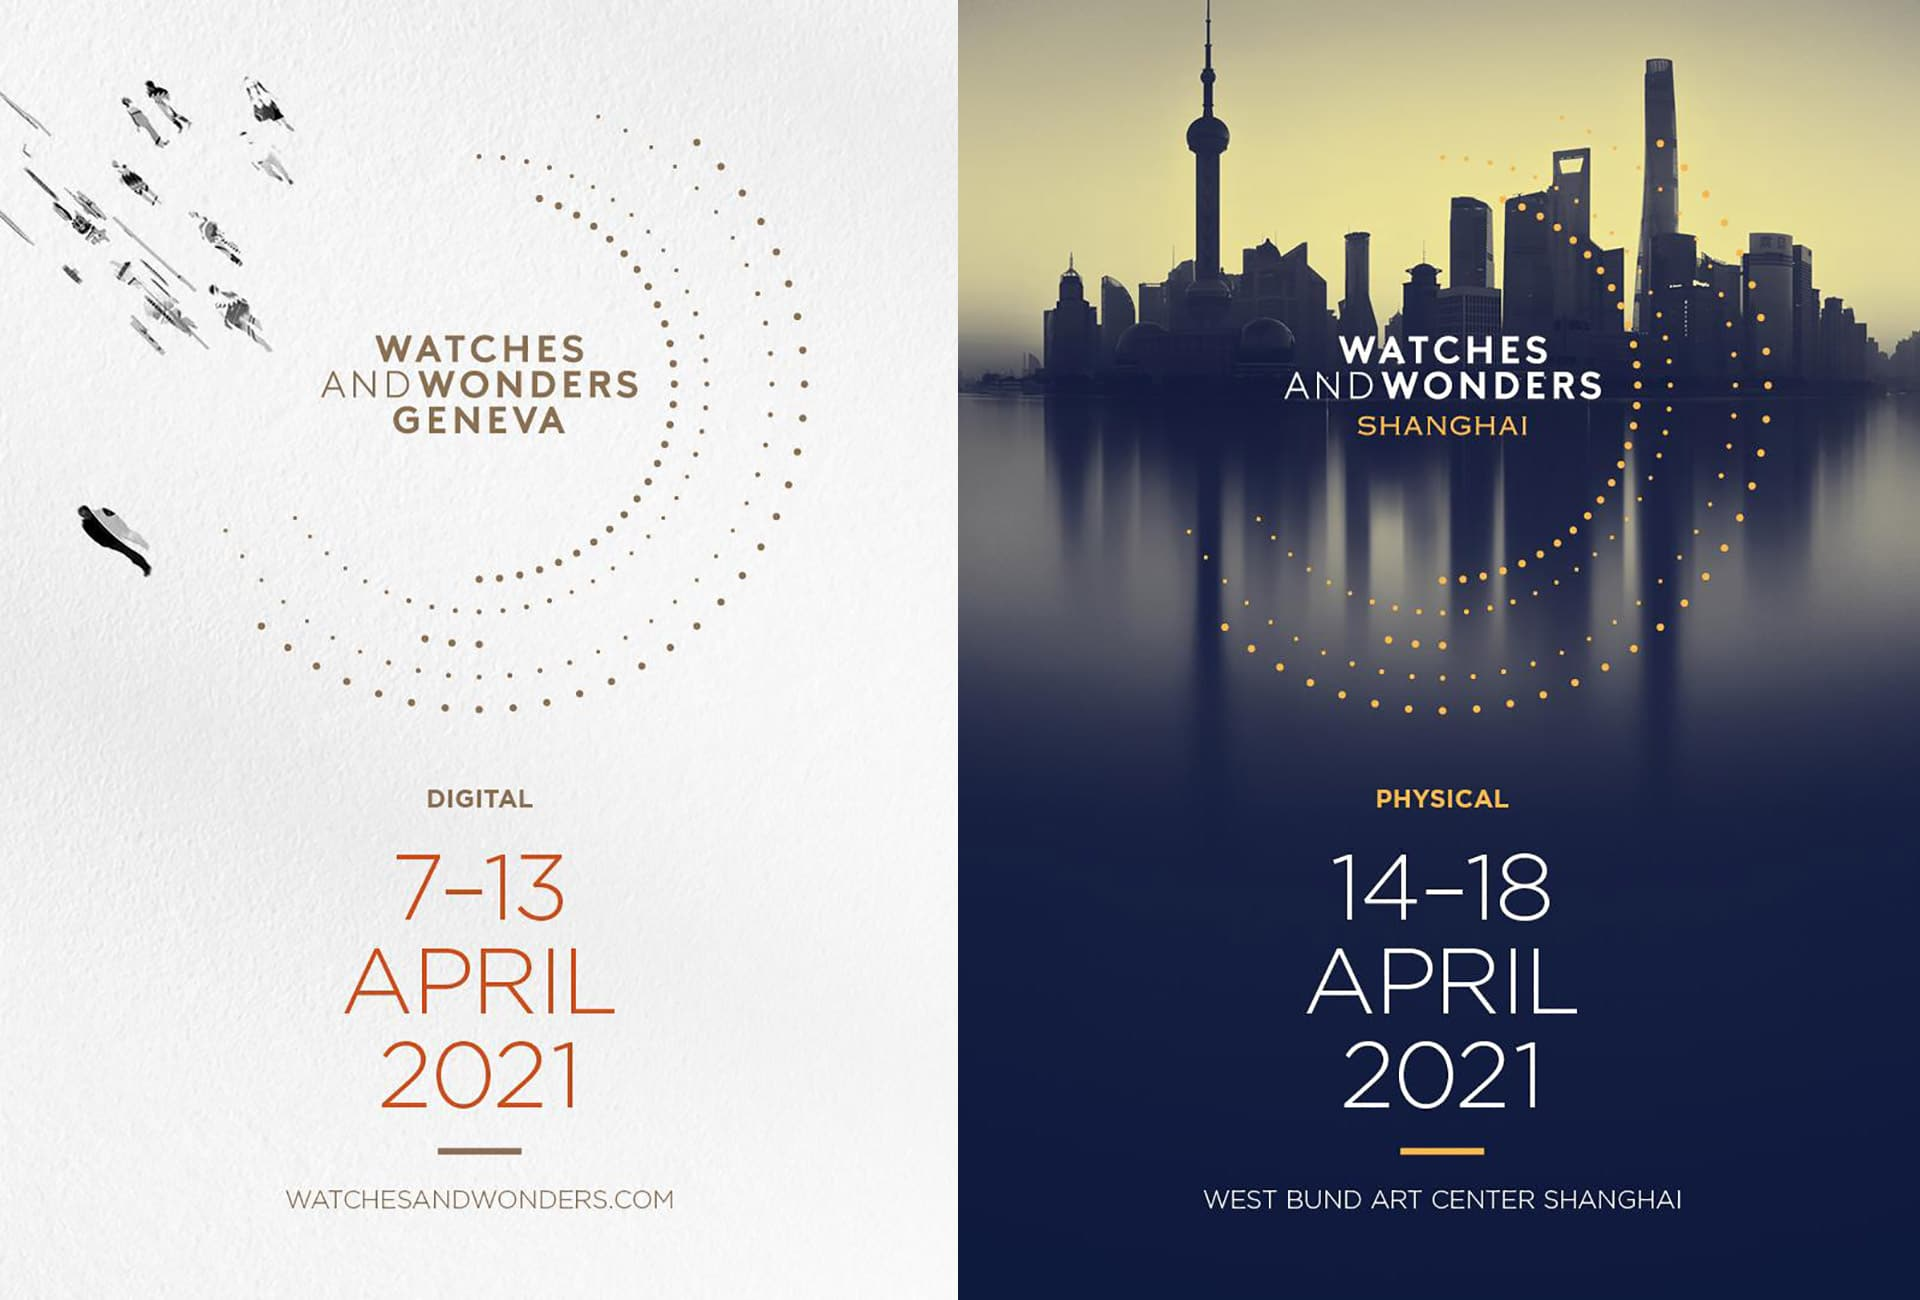 Watches and Wonders opens tomorrow for the biggest watch event ever to take place online!